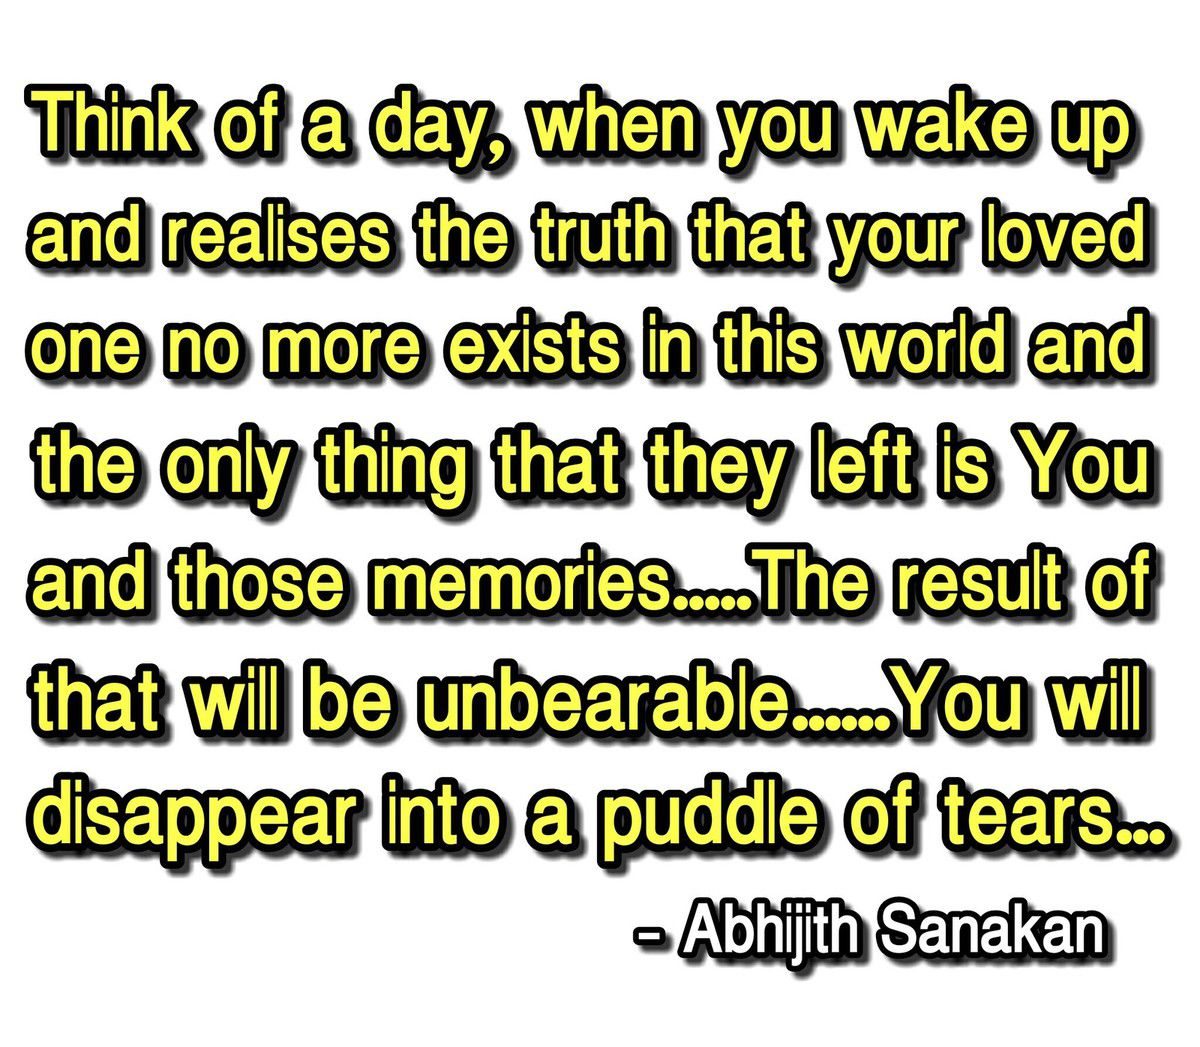 """""""Think of a day, when you wake up and realises the truth that your loved one no more exists in this world and the only thing that they left is You and those memories....The result of that will be unbearable... You will disappear into a puddle of tears..."""""""